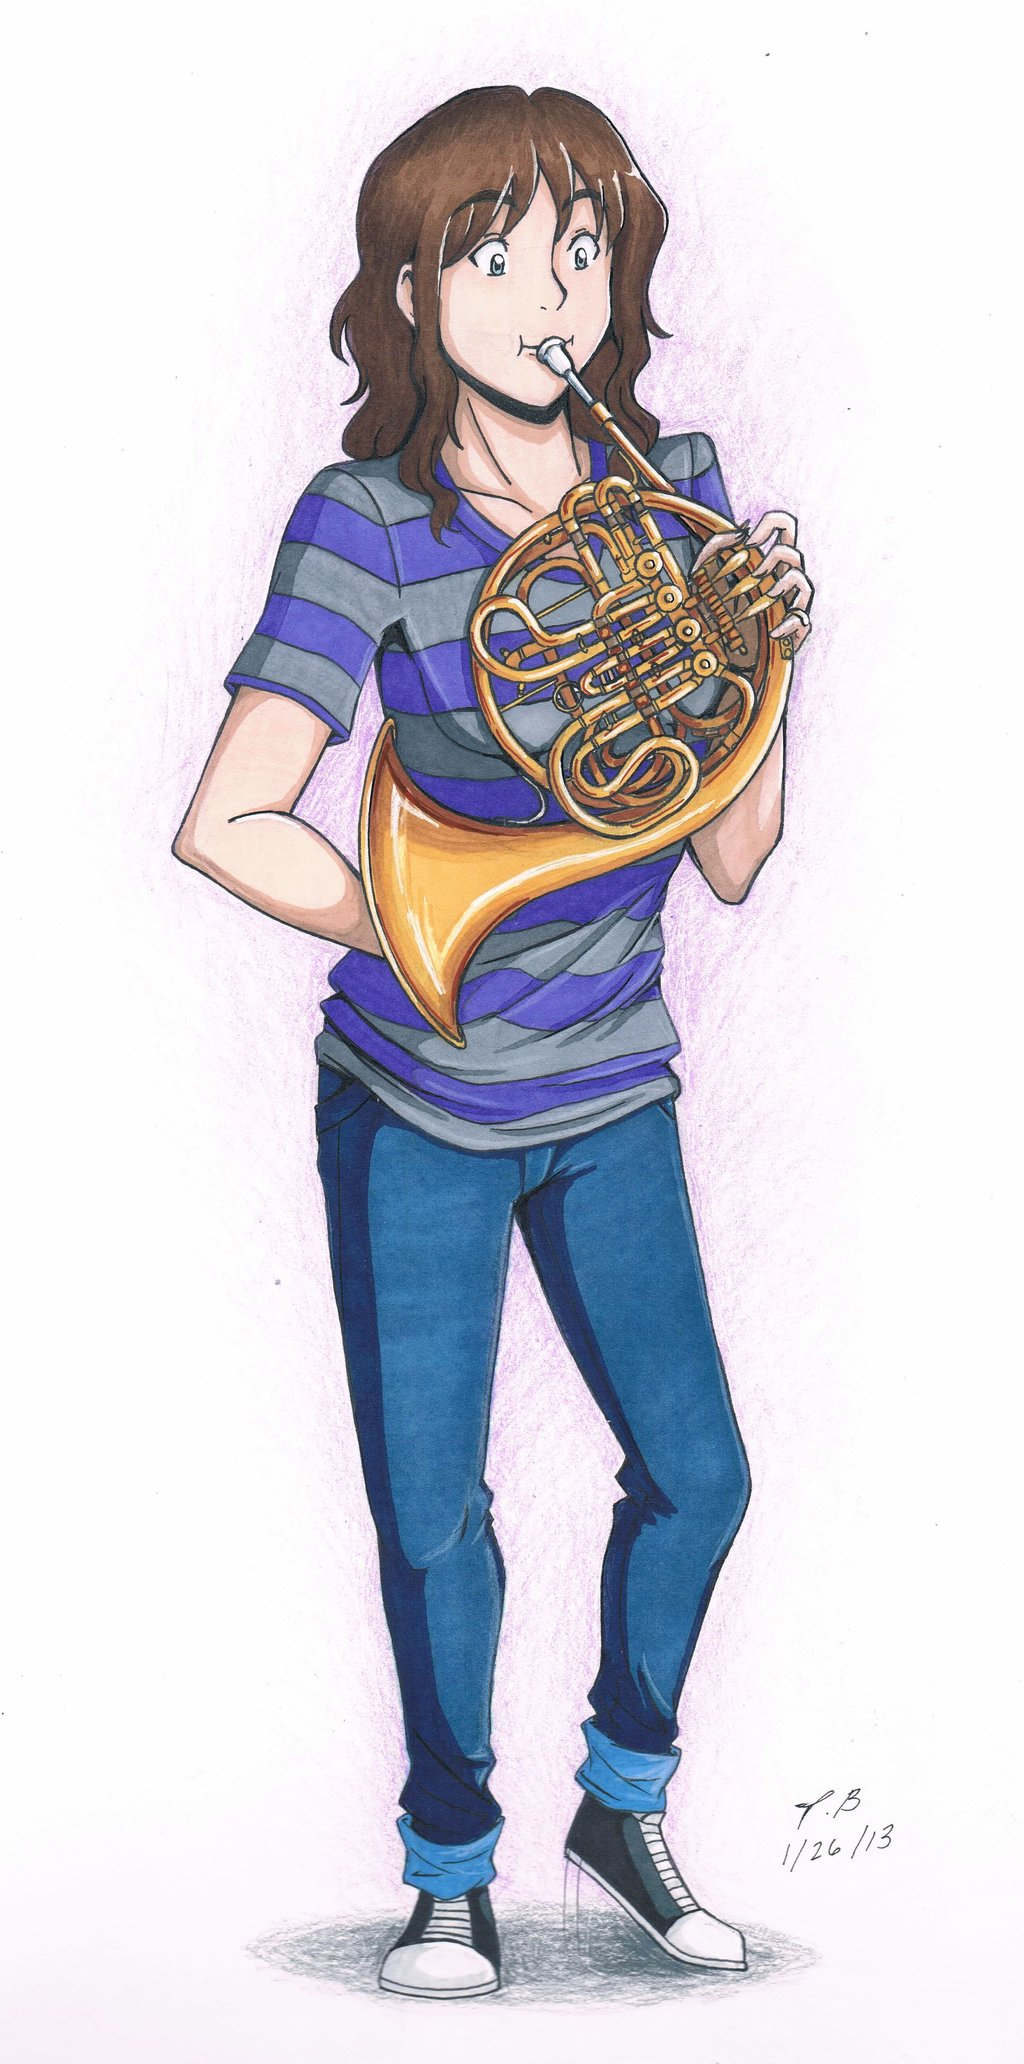 Drawing at getdrawings com. Player clipart french horn player jpg library stock